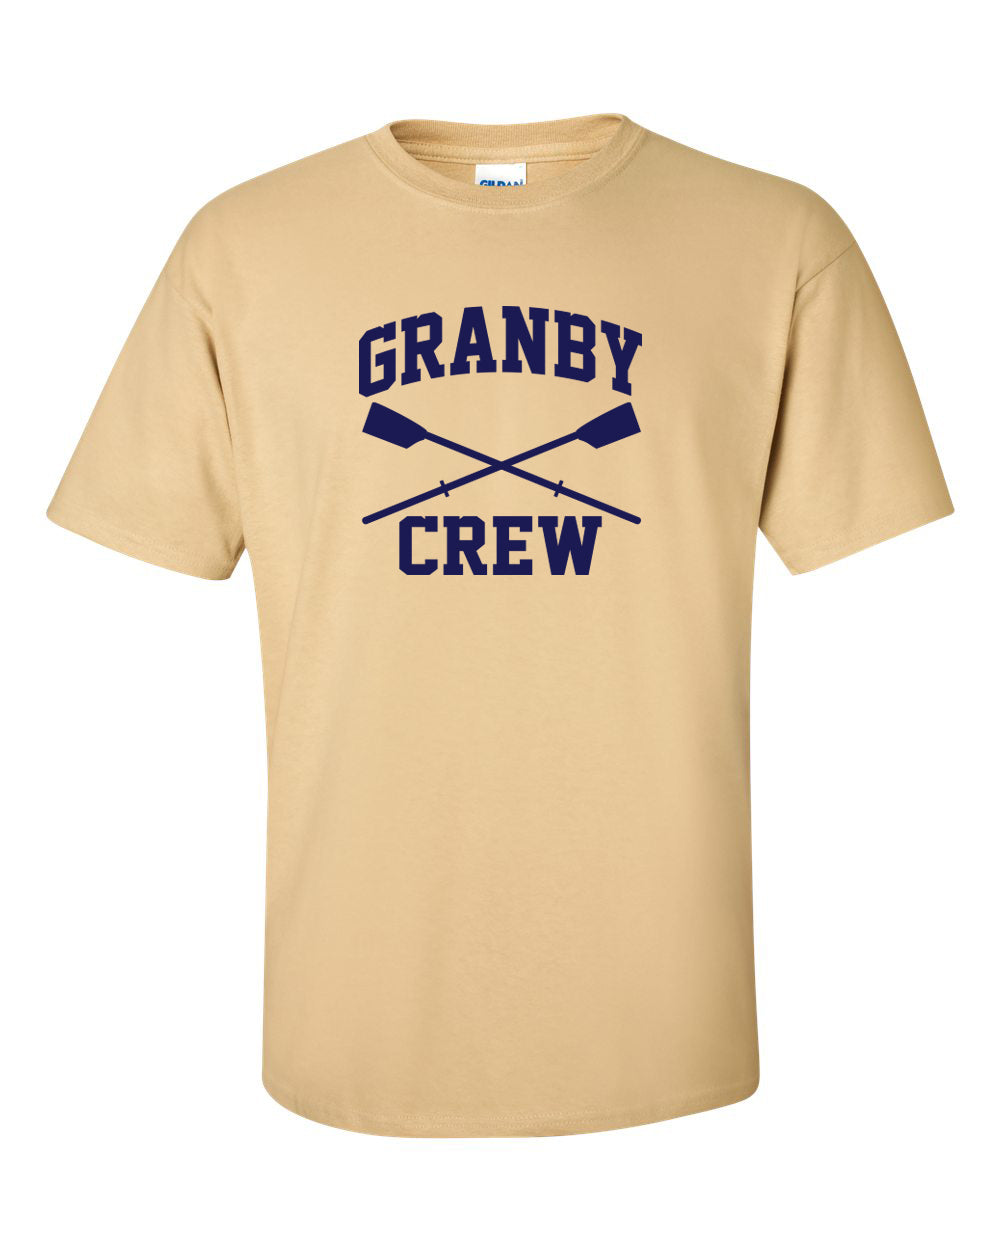 100% Cotton Granby Crew Men's Team Spirit T-Shirt